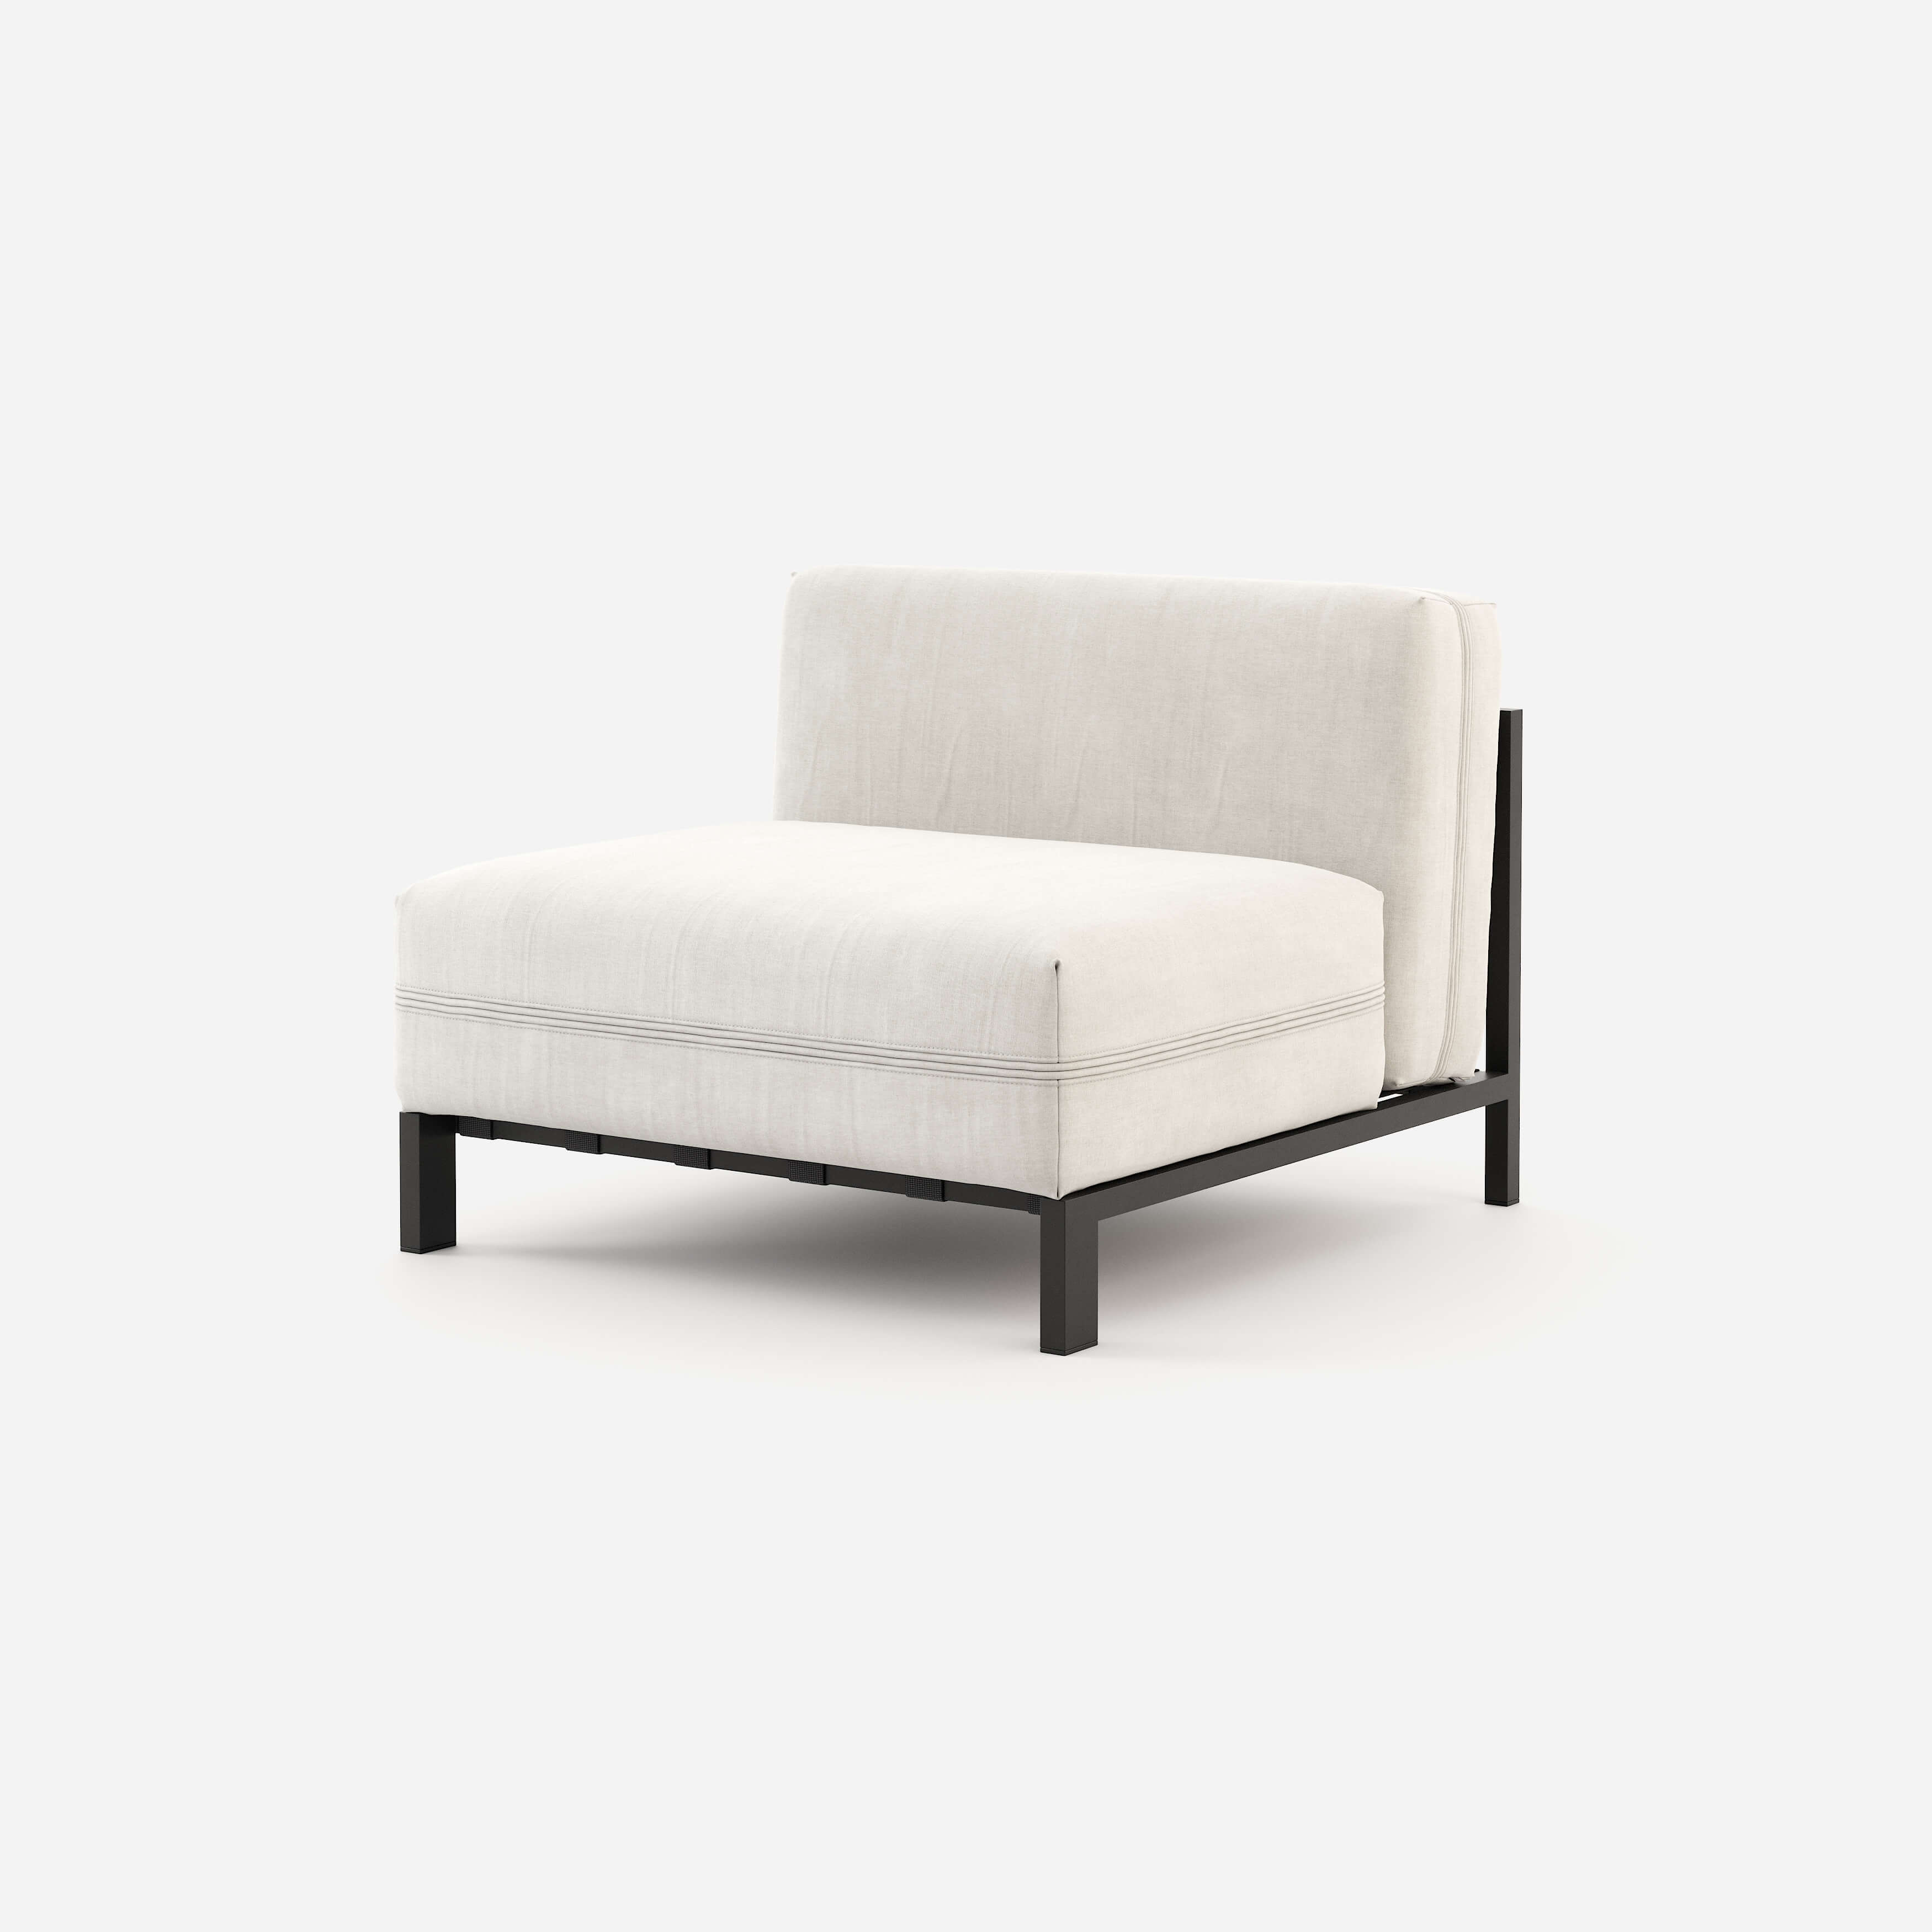 Bondi-middle-sofa-domkapa-evo-fabrics-sillon-exterior-collection-1